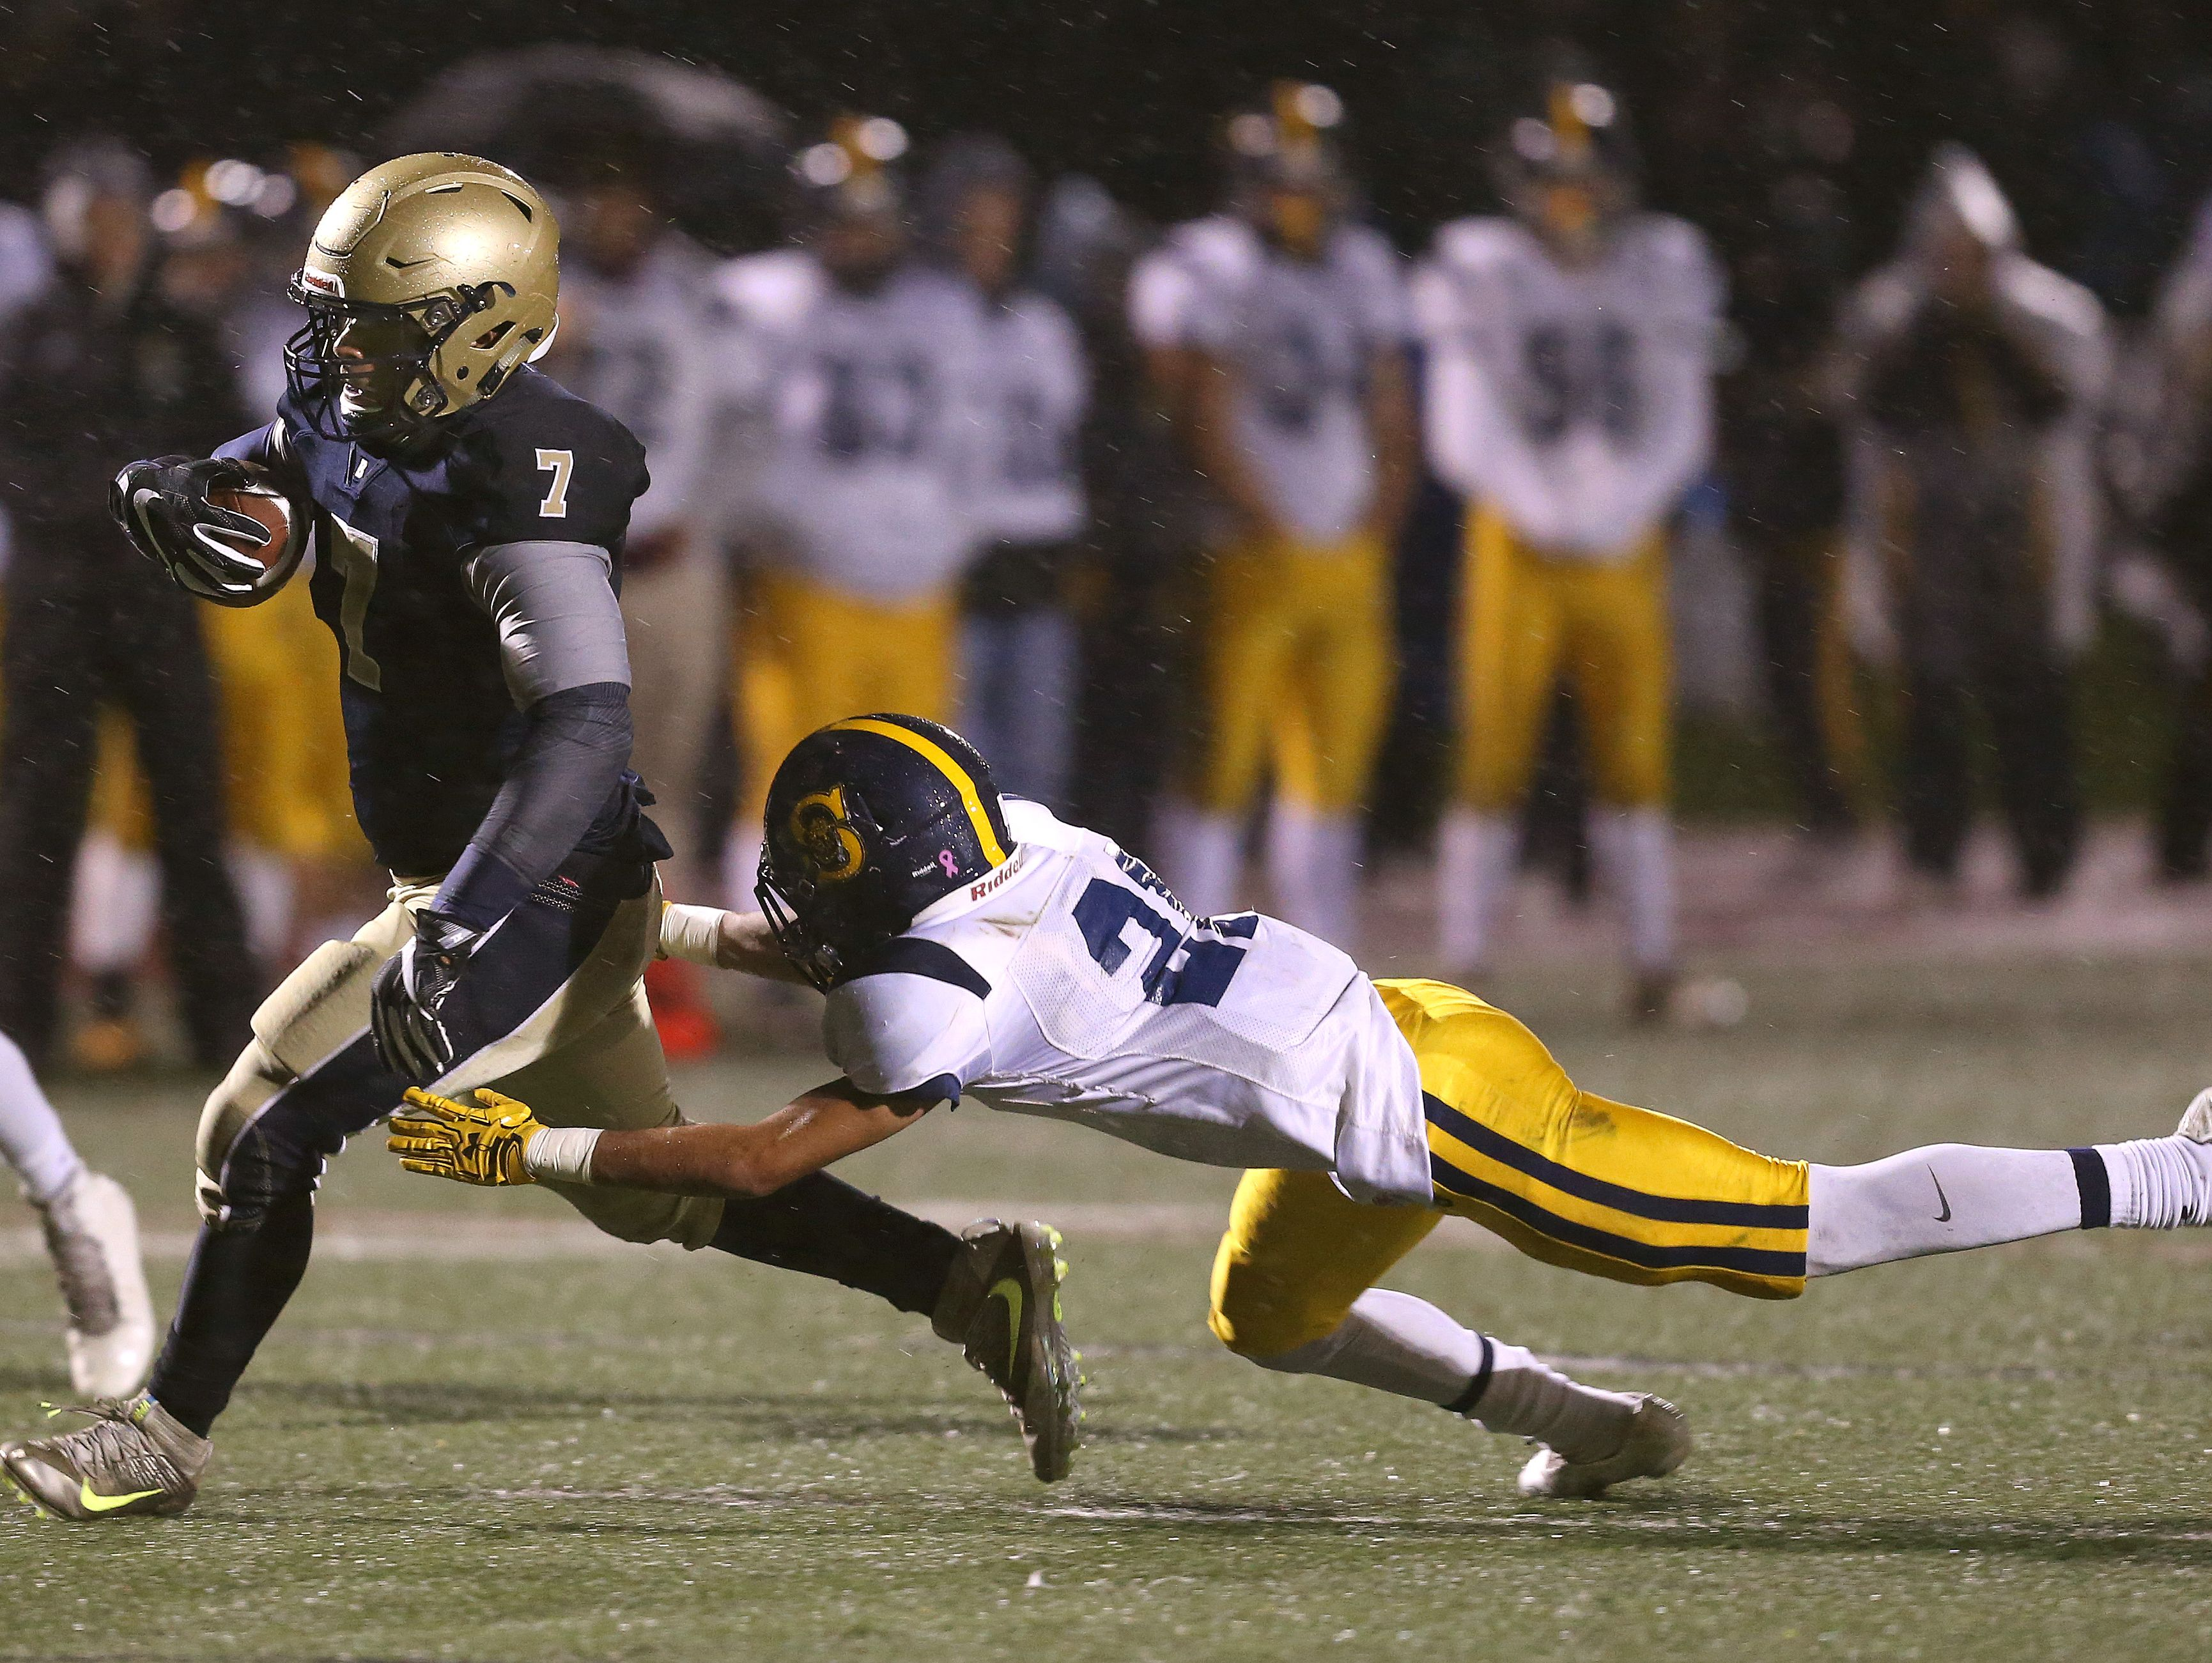 Brighton running back Jason Cunningham slips a tackle by Spencerport's Savion Stinson and scores a touchdown.